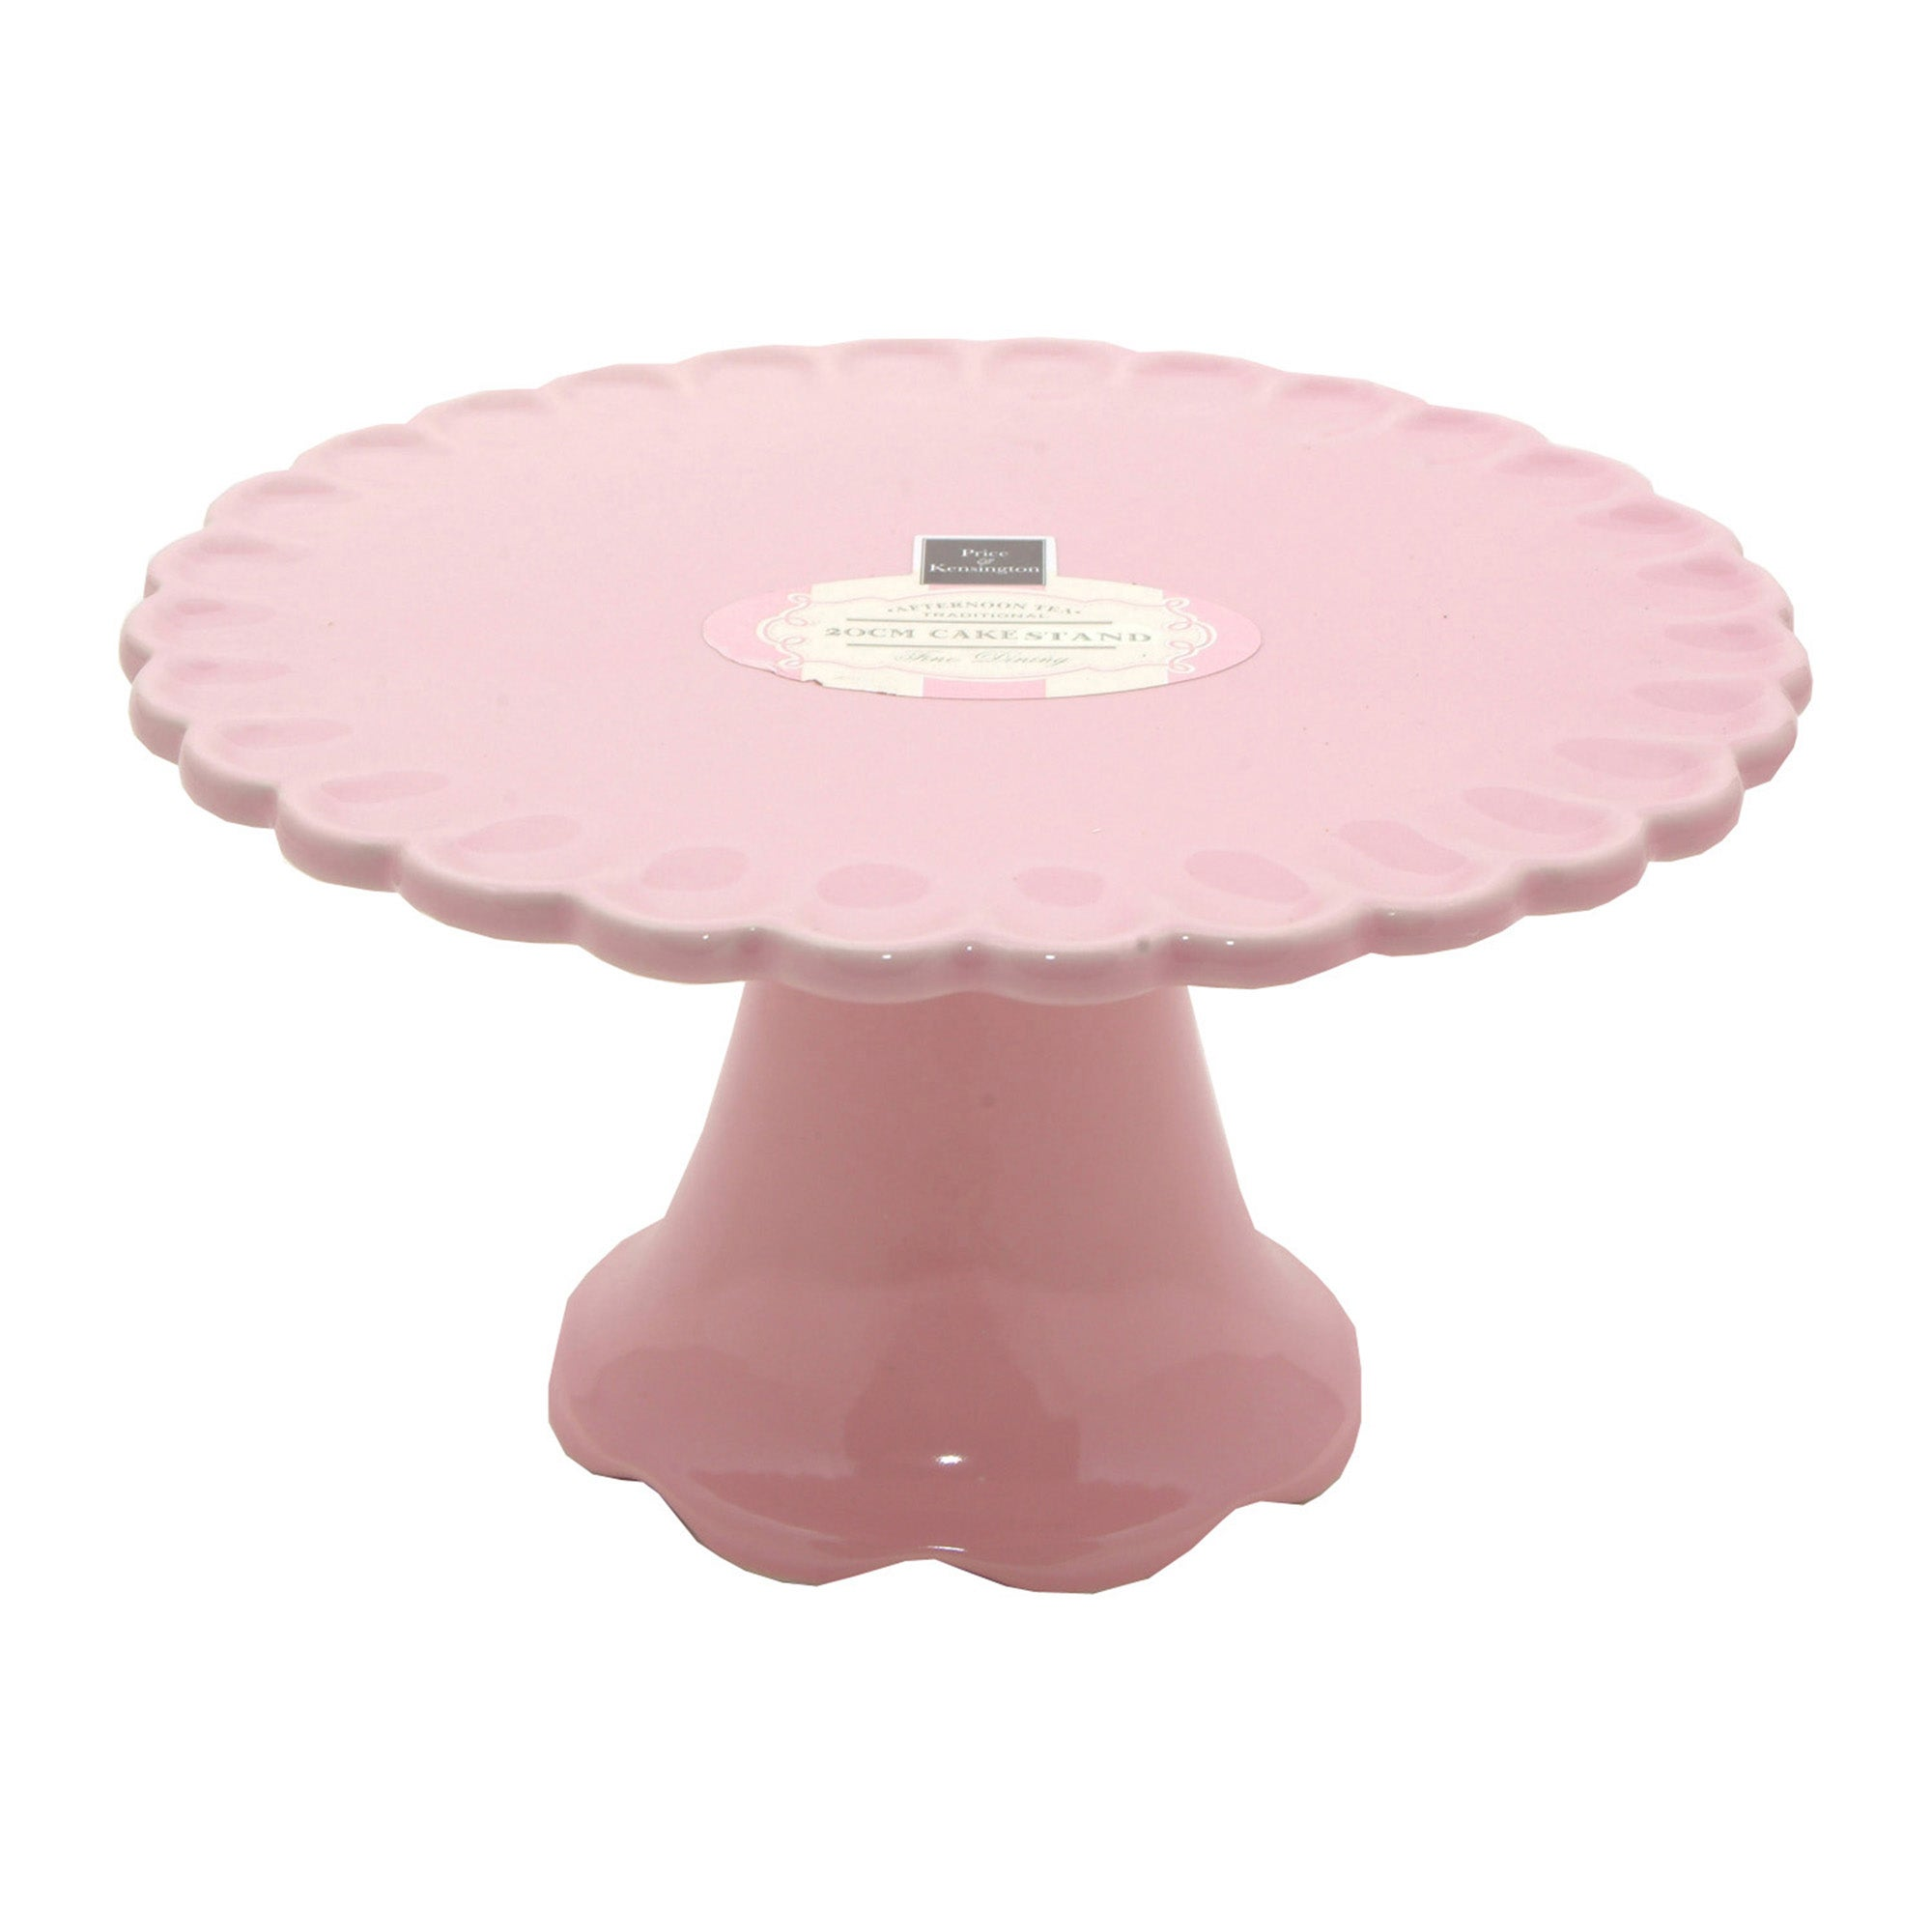 Rayware Pink Afternoon Tea Collection Footed Cake Stand